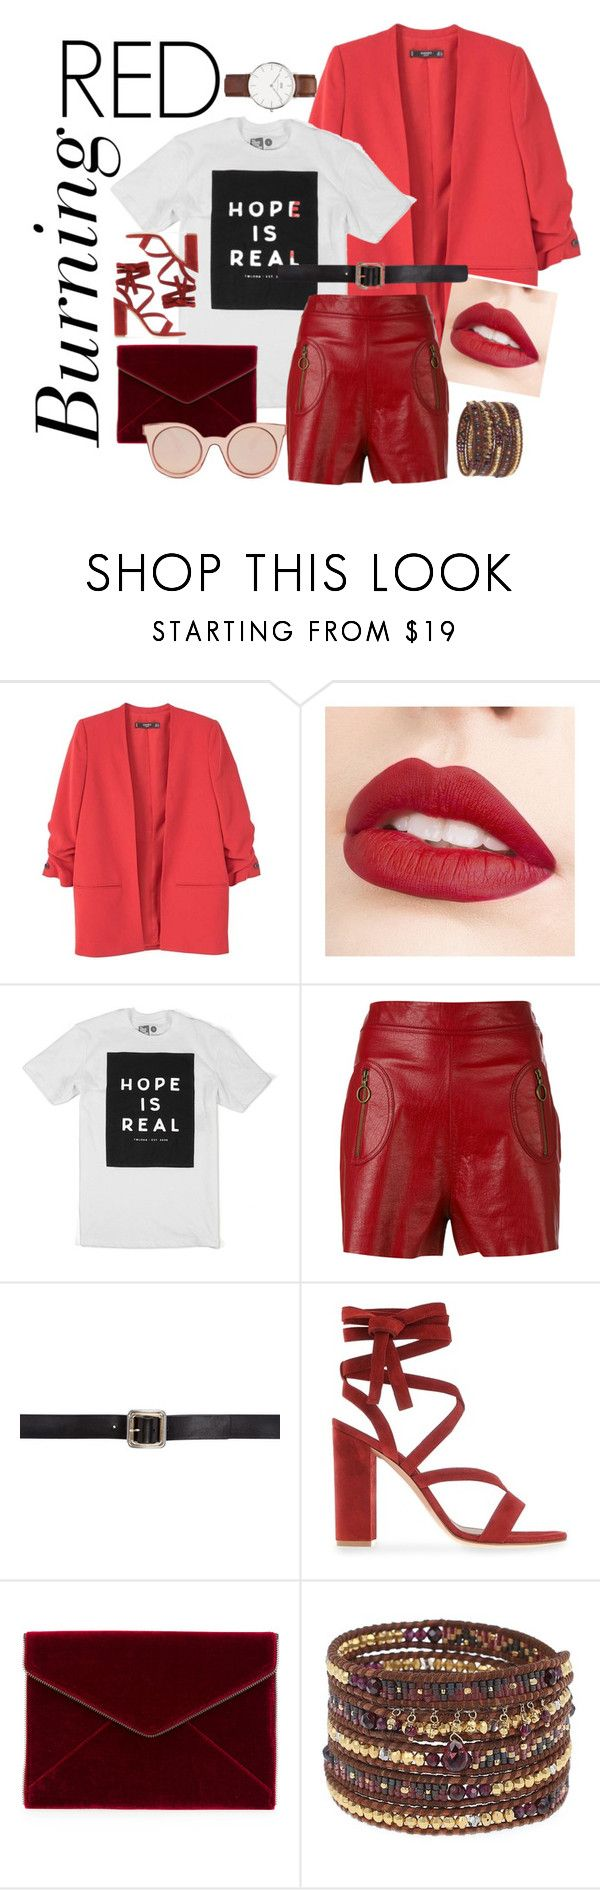 """Untitled #46"" by bebebelabee on Polyvore featuring MANGO, Jouer, Philosophy di Lorenzo Serafini, Maison Margiela, Gianvito Rossi, Rebecca Minkoff, Fendi, Daniel Wellington and Chan Luu"